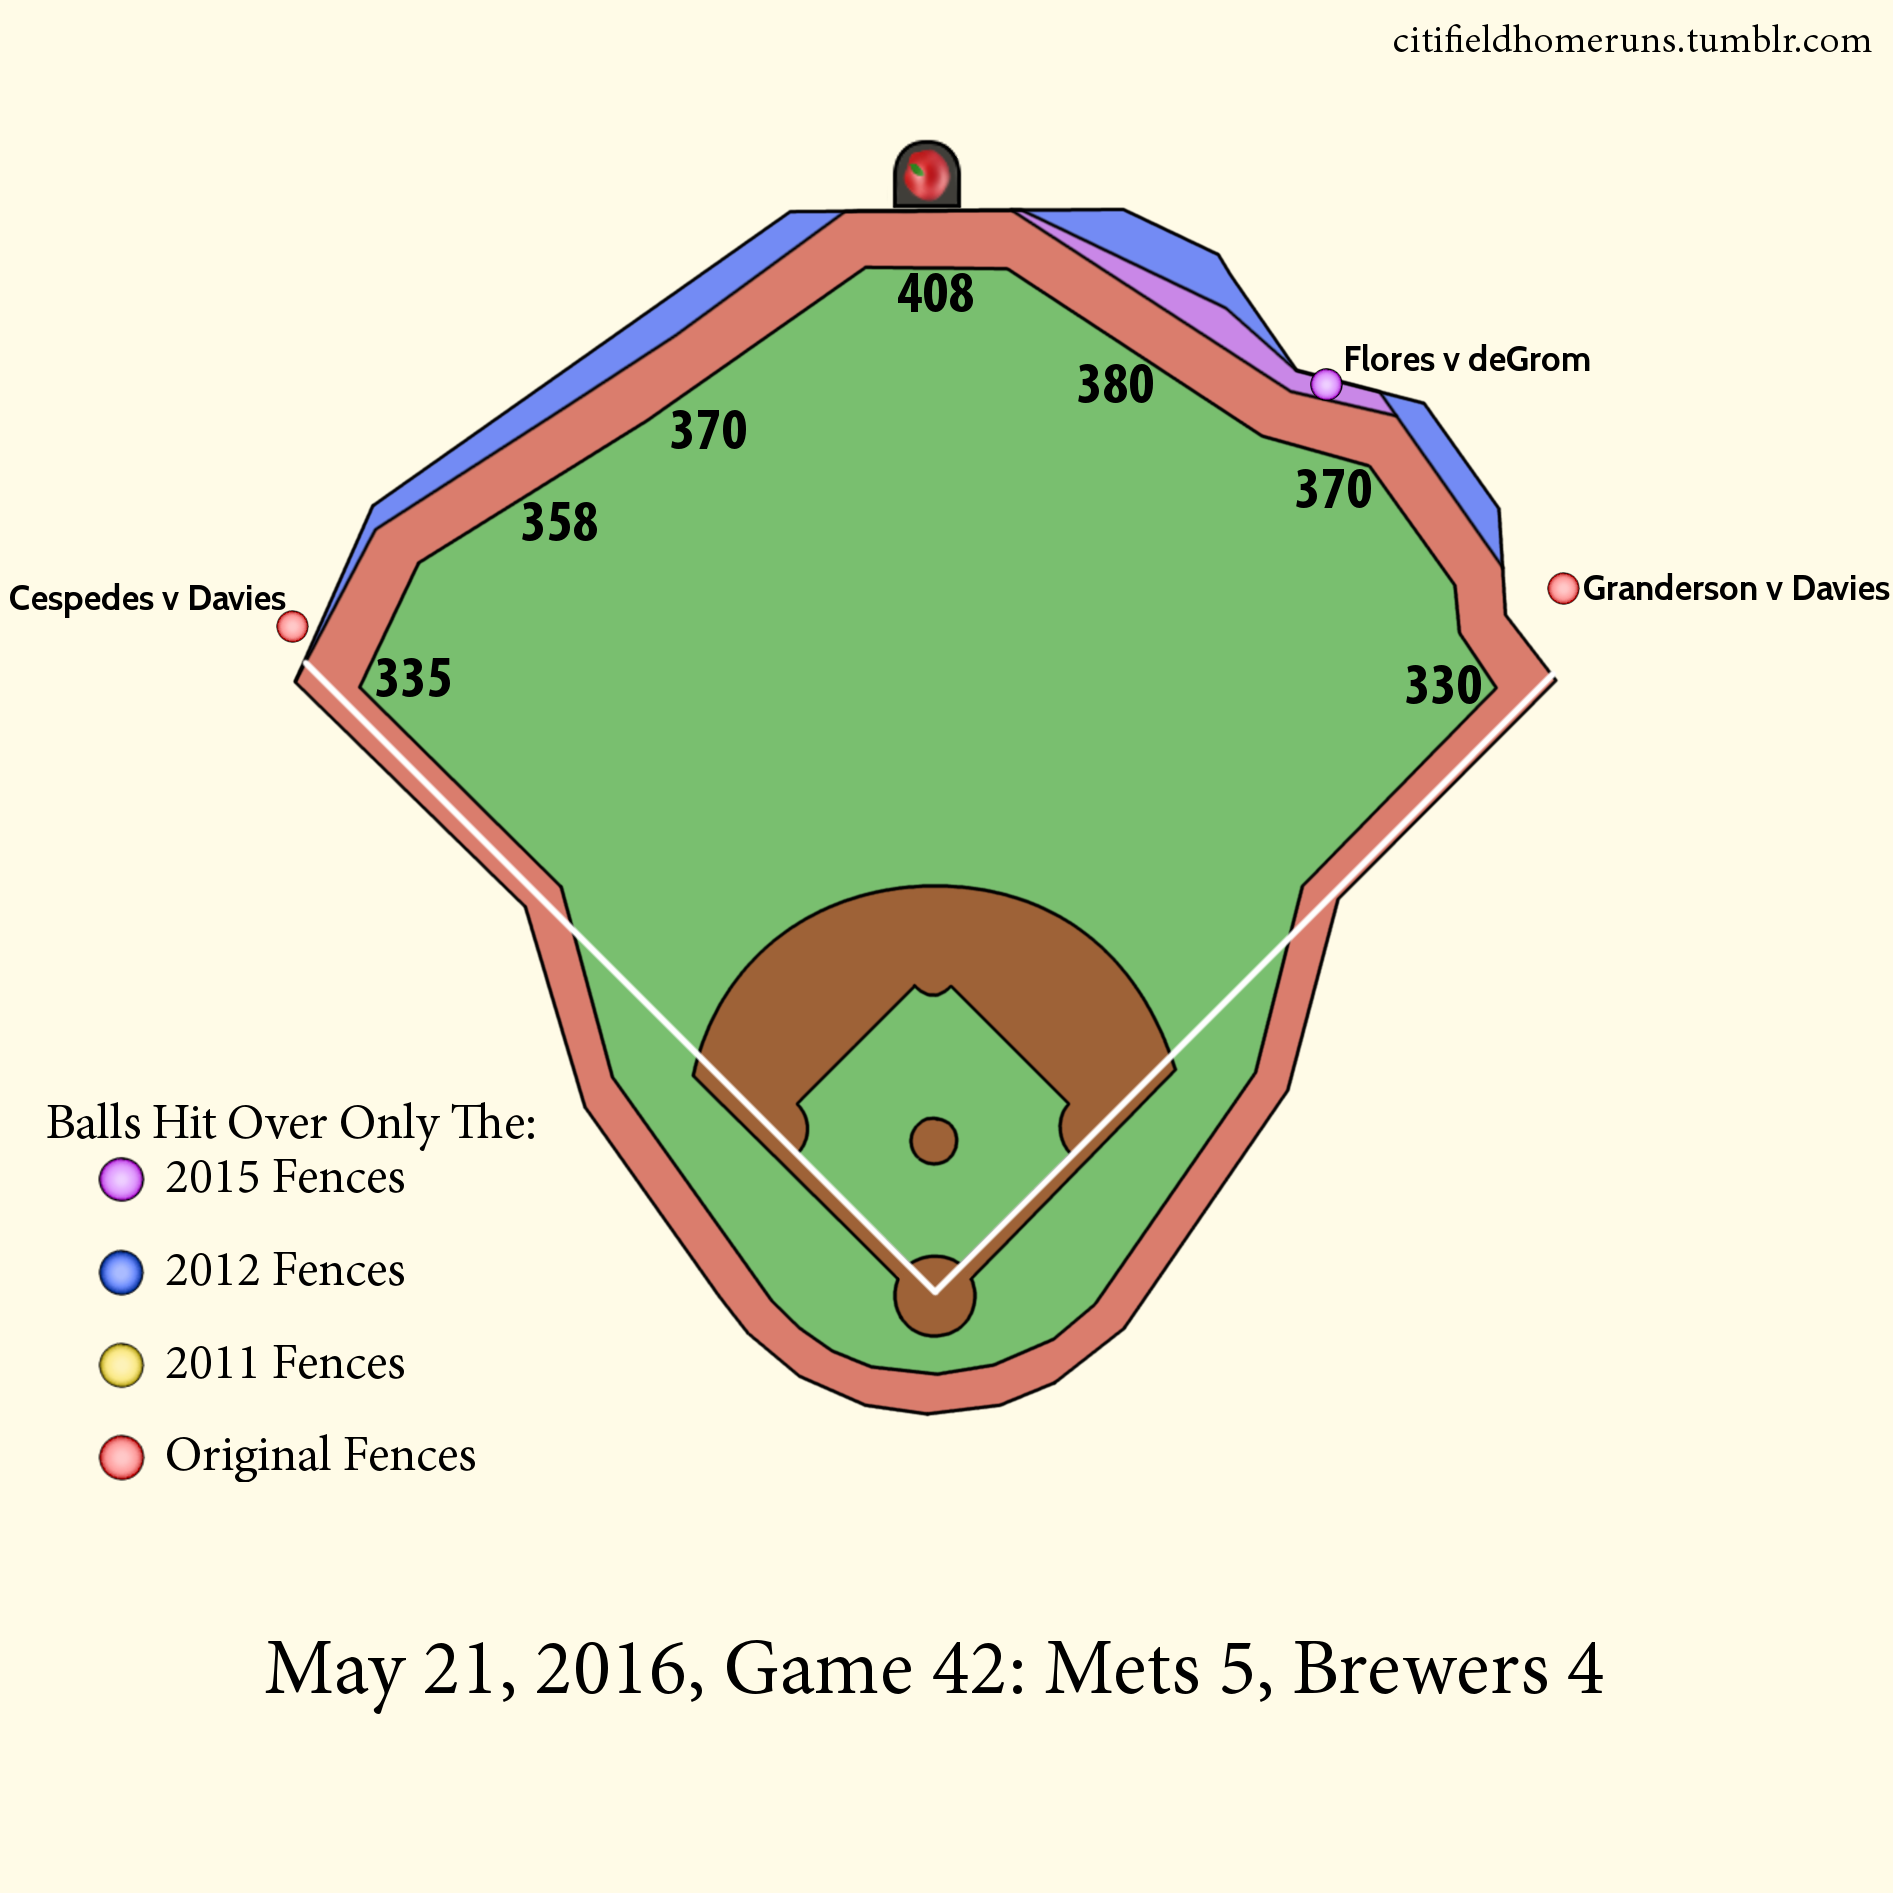 33.  Granderson v Davies: 0 Outs, 0-1 Two Seamer.  34.  Flores v deGrom: 2 Outs 1-1 Four Seamer, 2 Runs.  35.  Cespedes v Davies: 1 Out, 2-2 Change-up, 2 Runs.